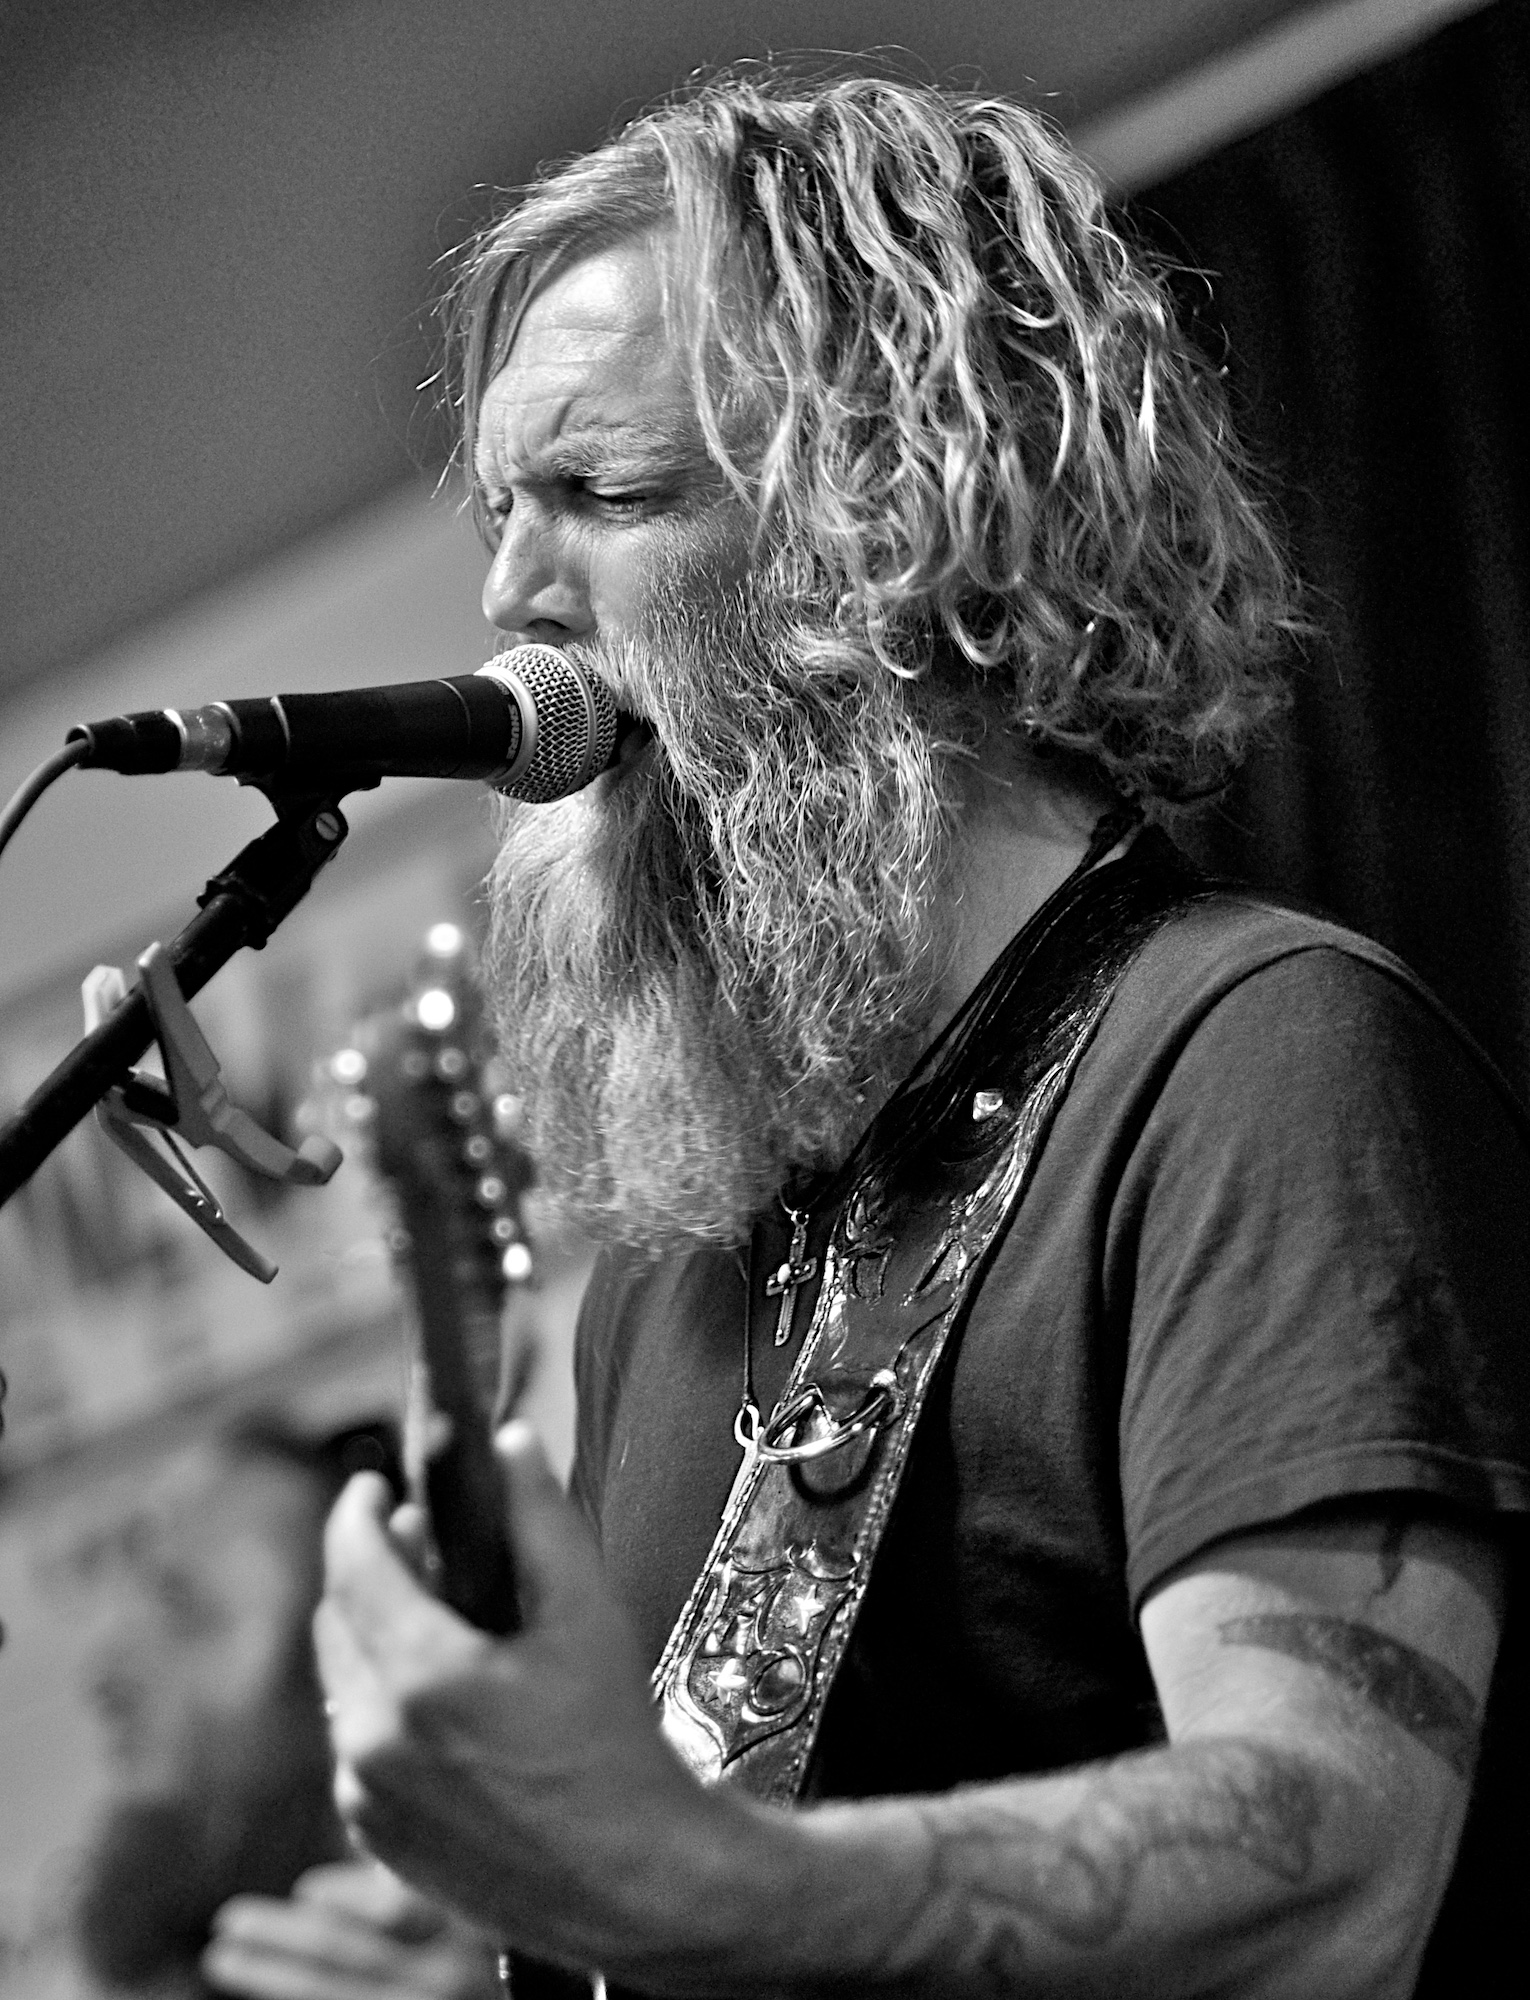 Anders Osborne performs at Cactus Music. June 12, 2010